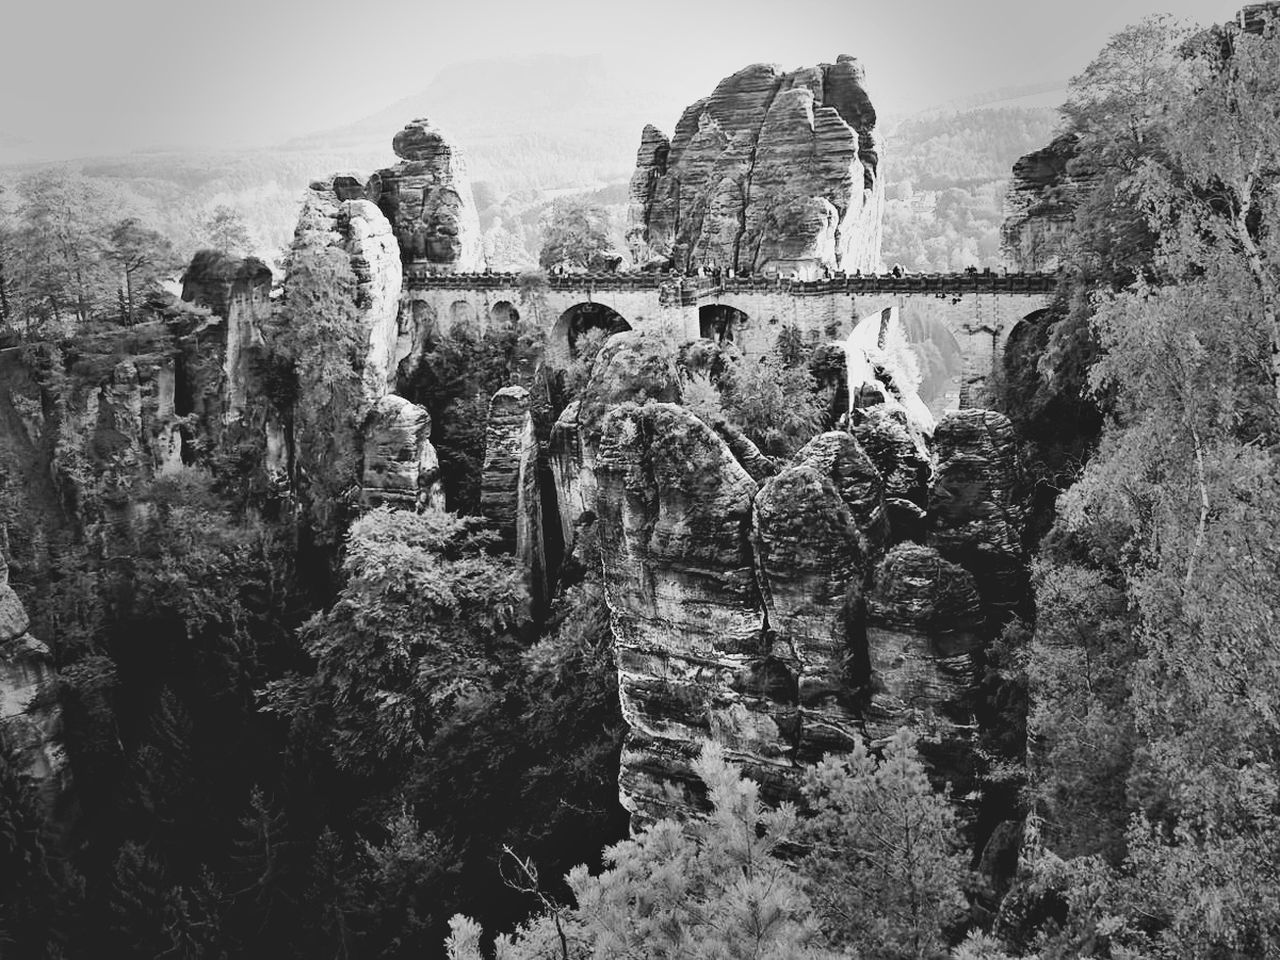 Ancient Ancient Civilization Arquitecture Beautiful Bridge Beautiful Nature Beauty In Nature Big Stones Day History Nature Nature No People Old Ruin Outdoors Quarry Relax Rock Rocks Spirituality Stone Stone Bridge Stone Park Stones The Past Walking